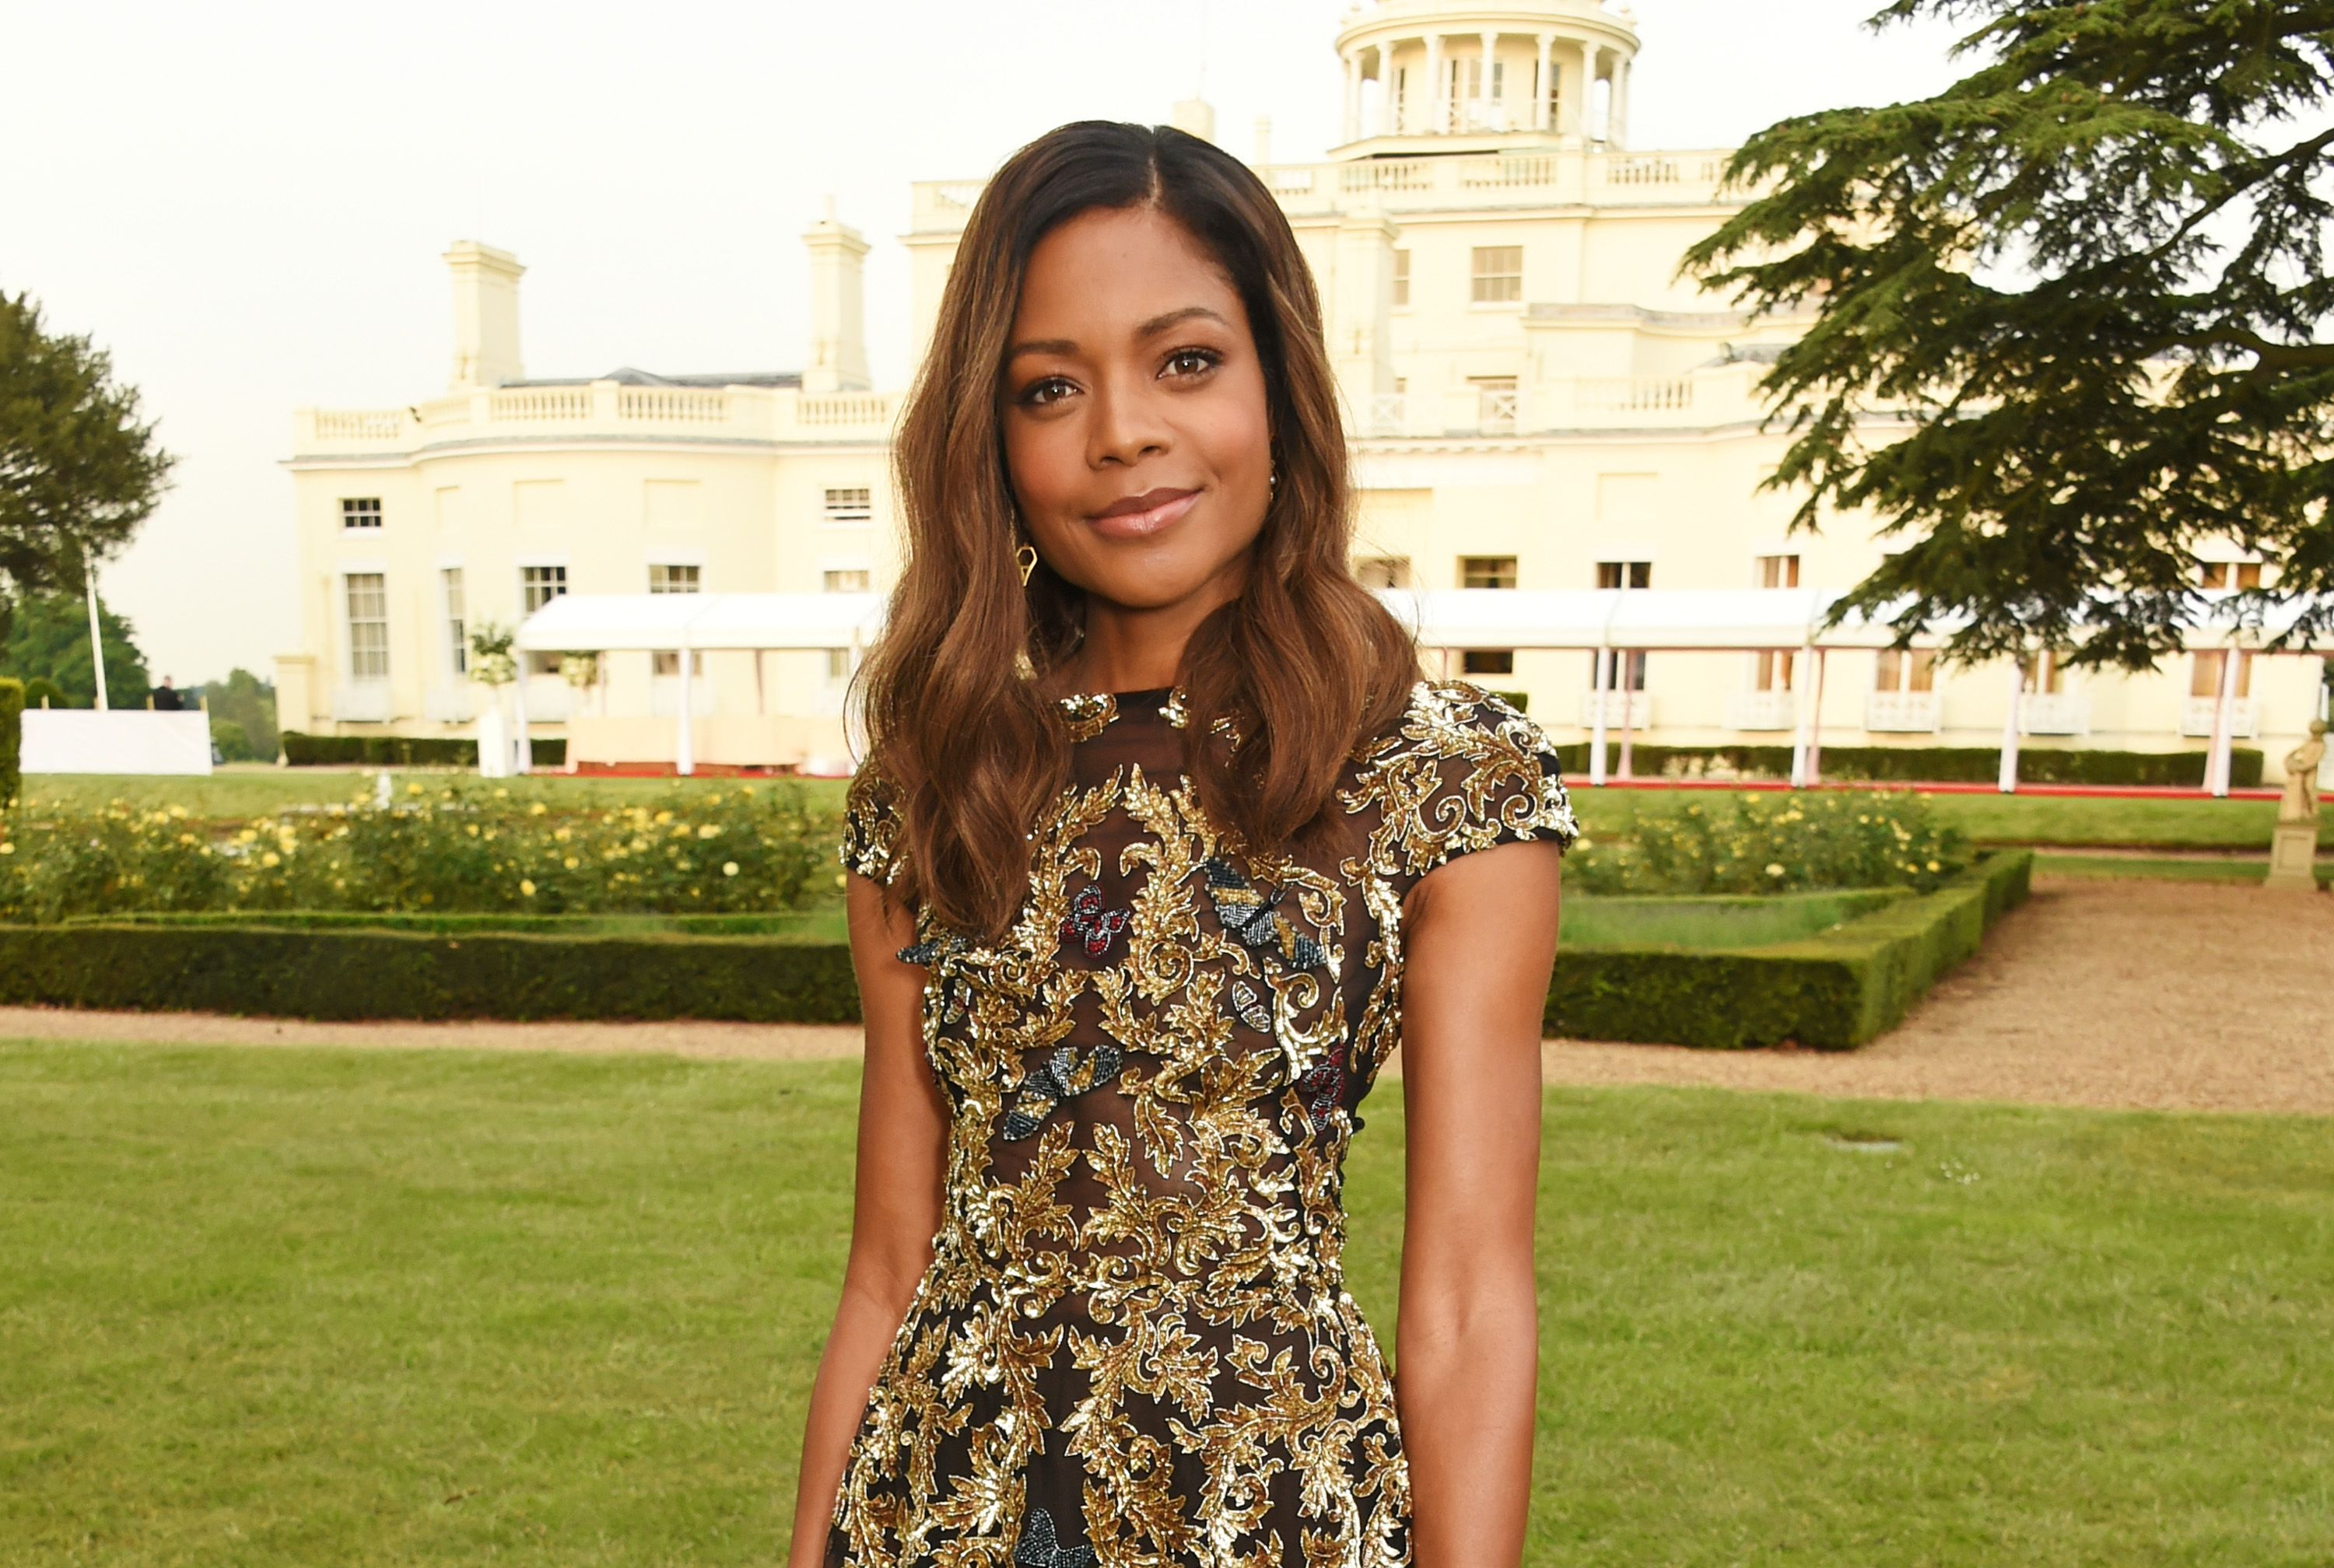 No Time to Die's Naomie Harris explains the role women play in Bond 25